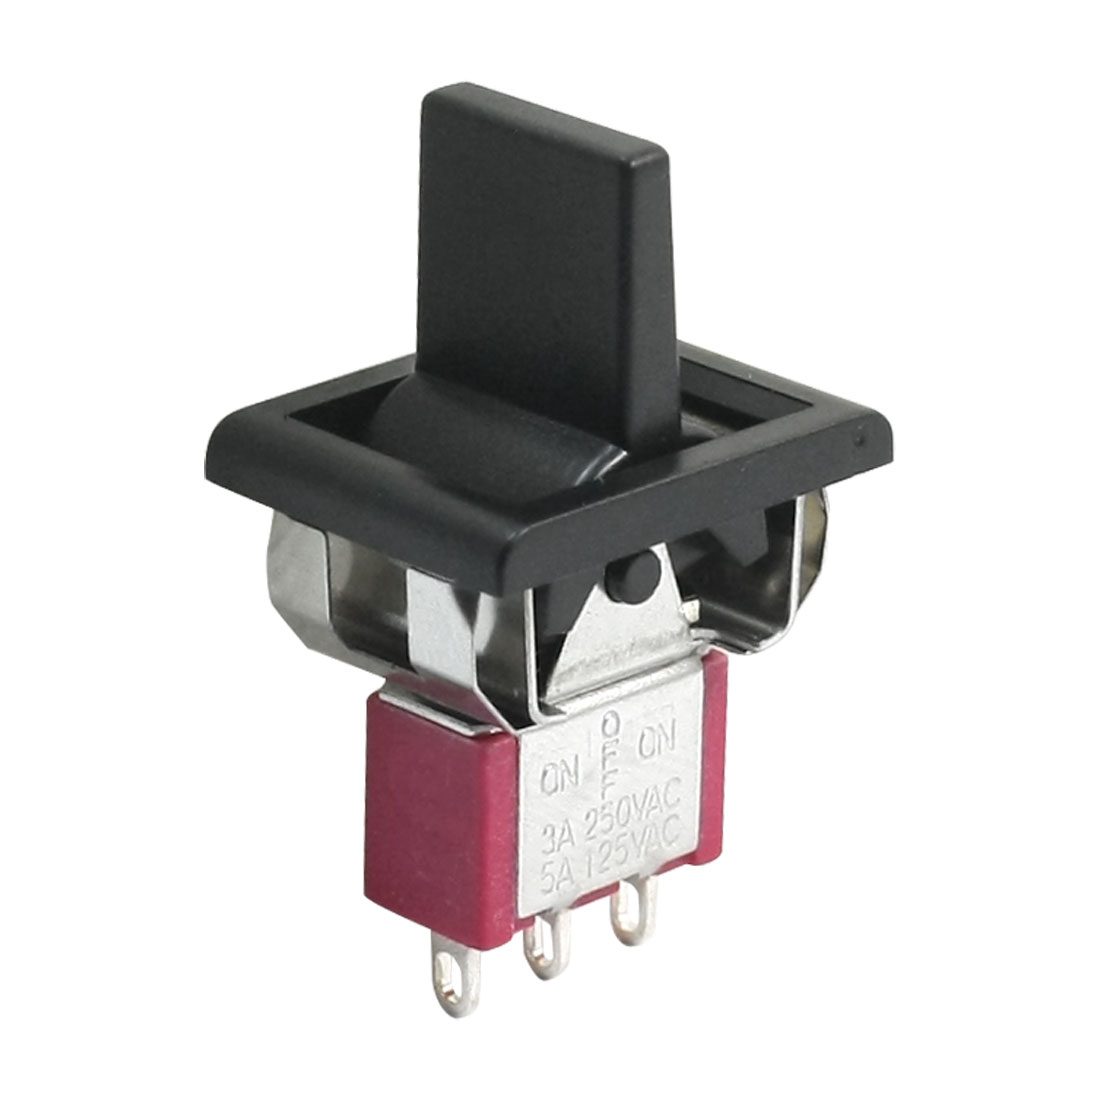 T80-R SPDT 3 Positions ON/OFF/ON Toggle Switch AC 250V/3A 125V/5A